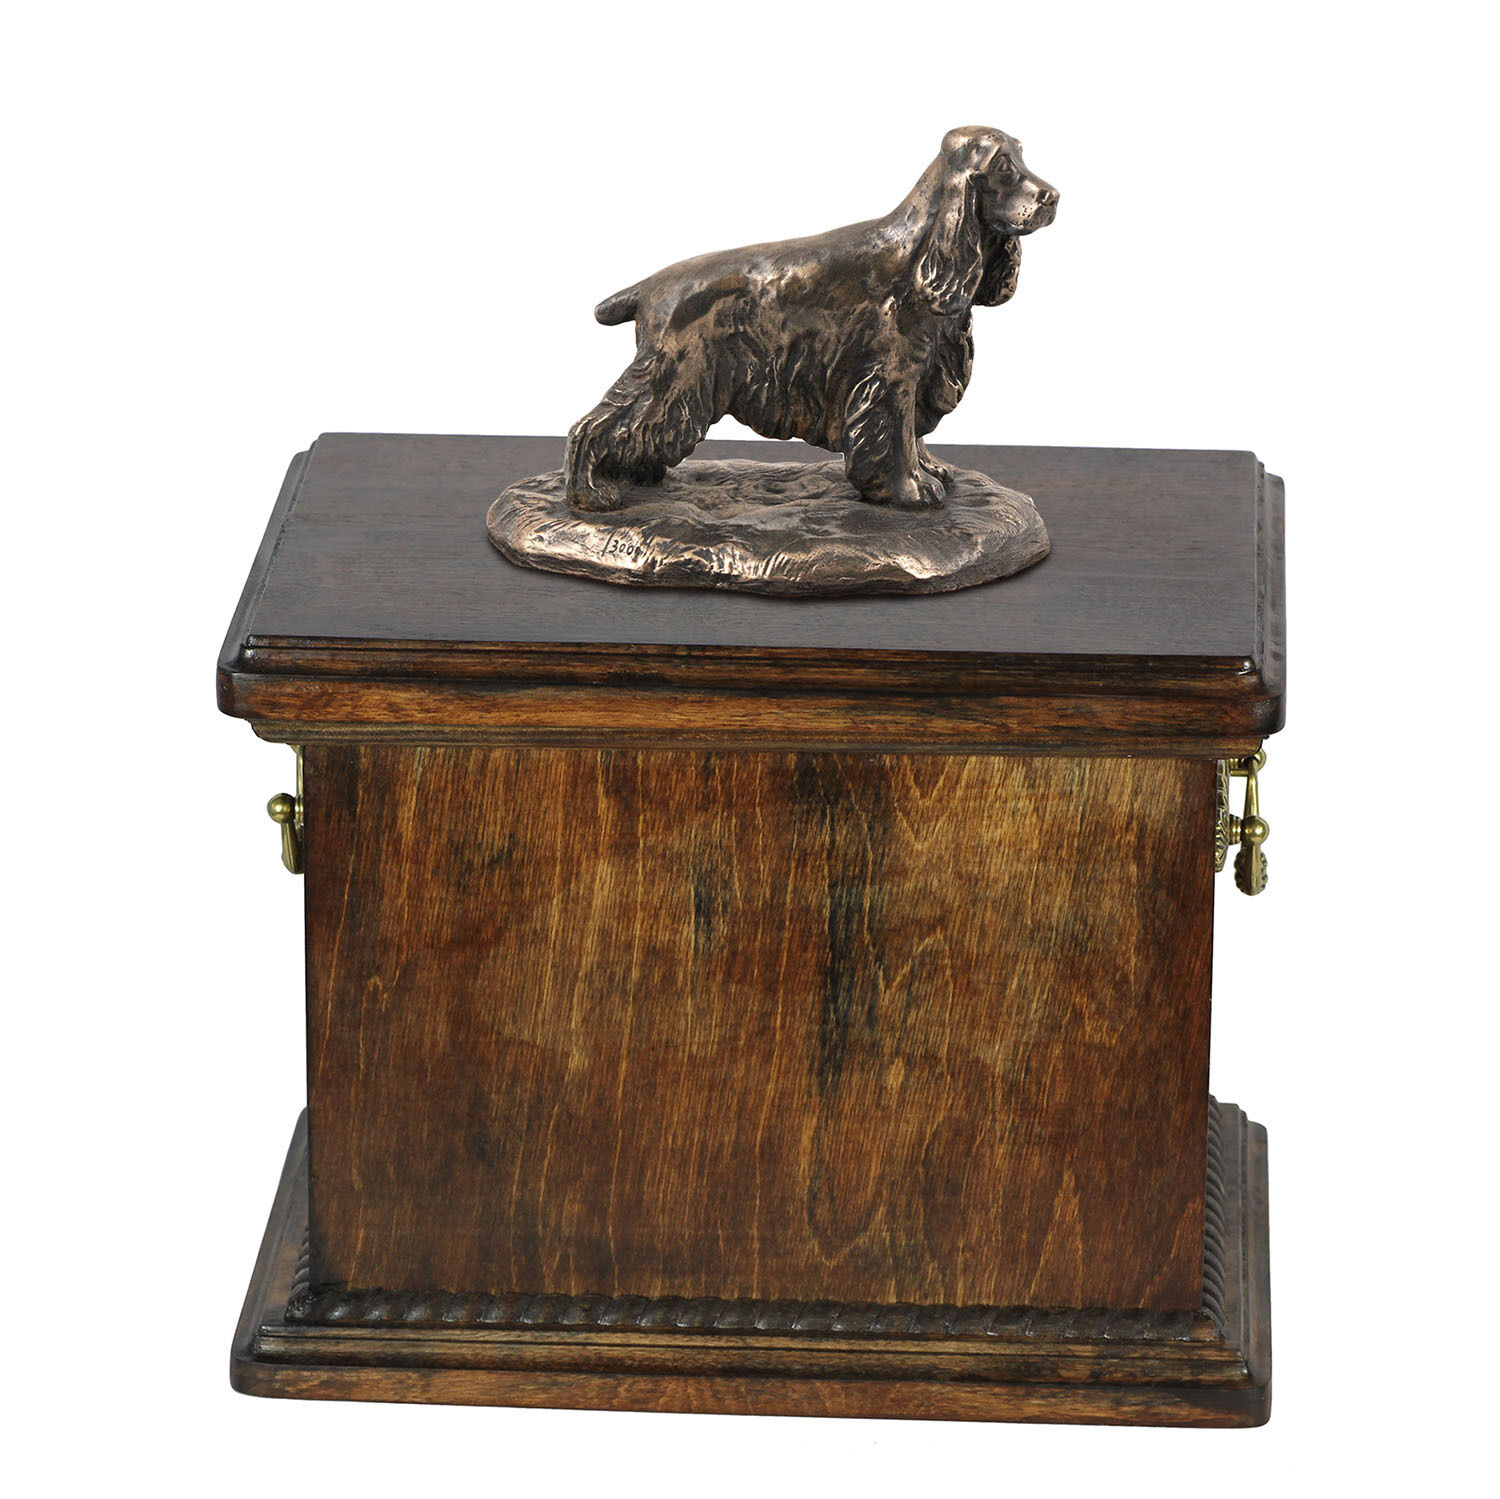 Solid Wood Casket English Cocker Spaniel Urn for Dog's ashes,with Dog statue.